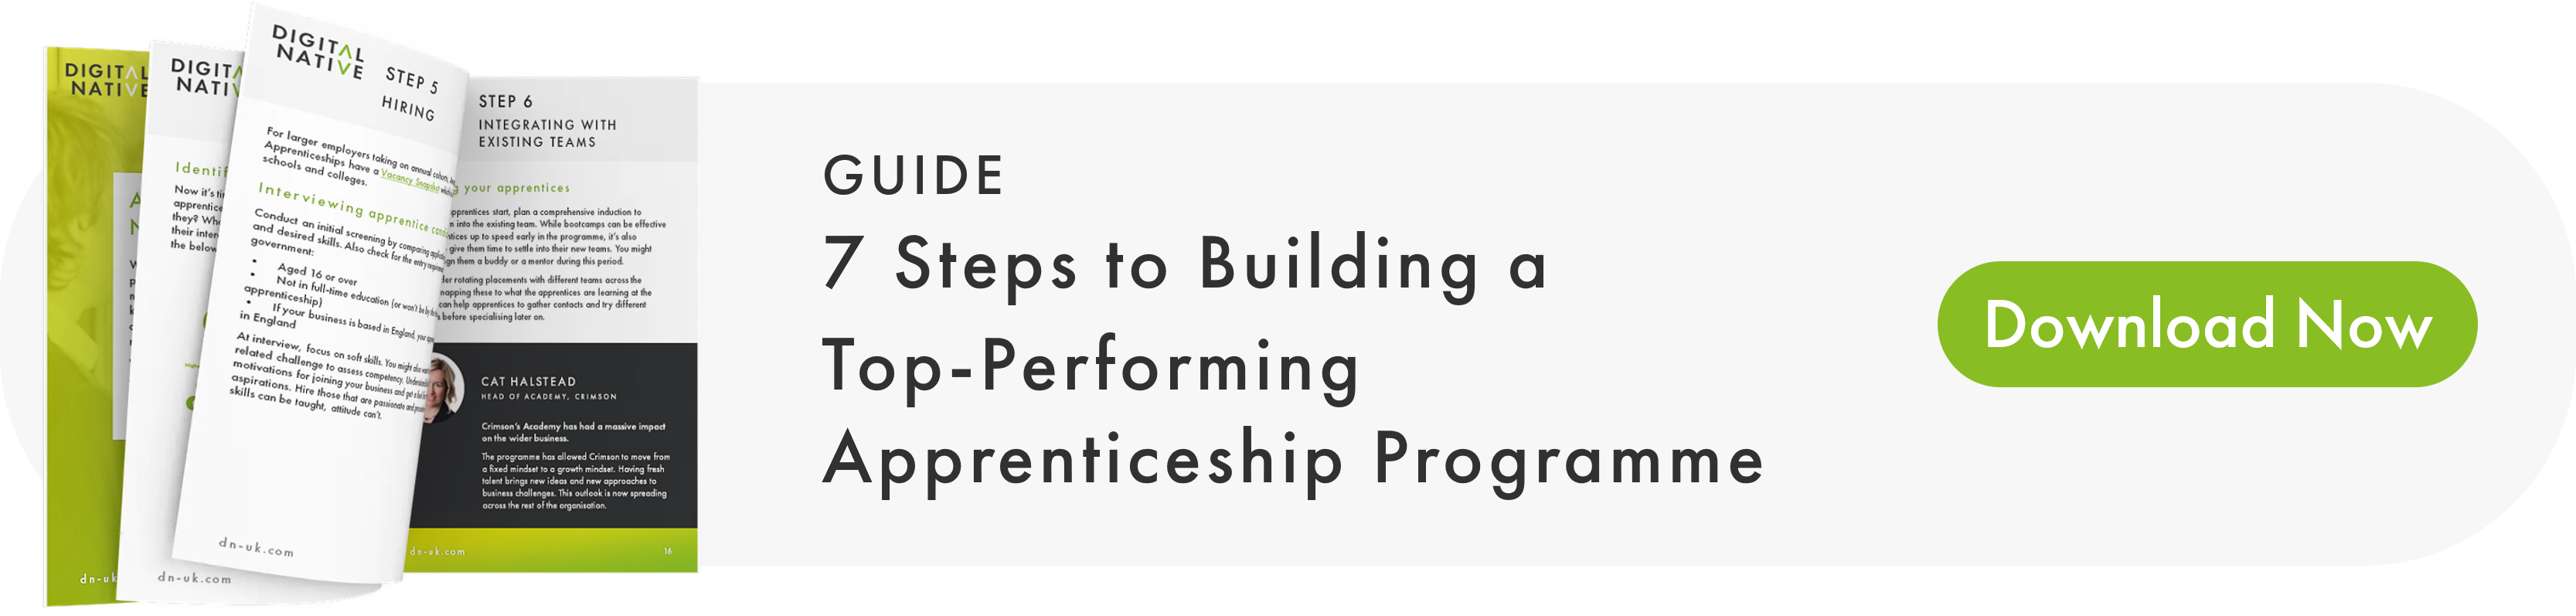 7 Steps to Building a Top-Perfroming Apprenticeship Programme - Download Now